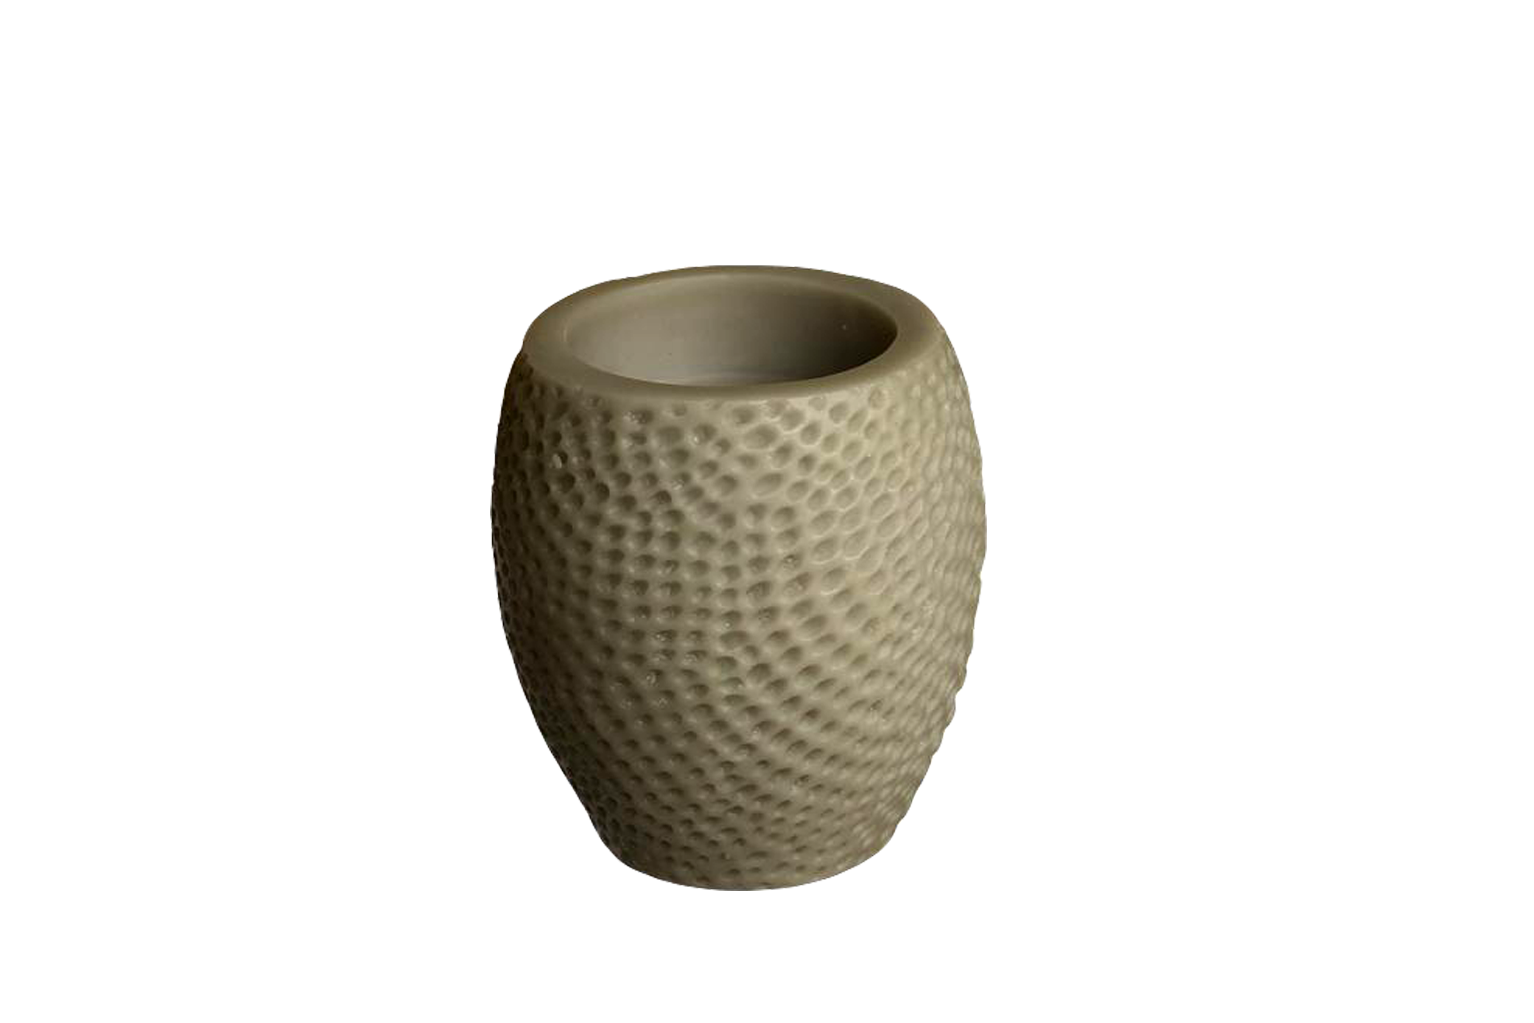 Grey Hammered Beeswax Candle - Small - S$35